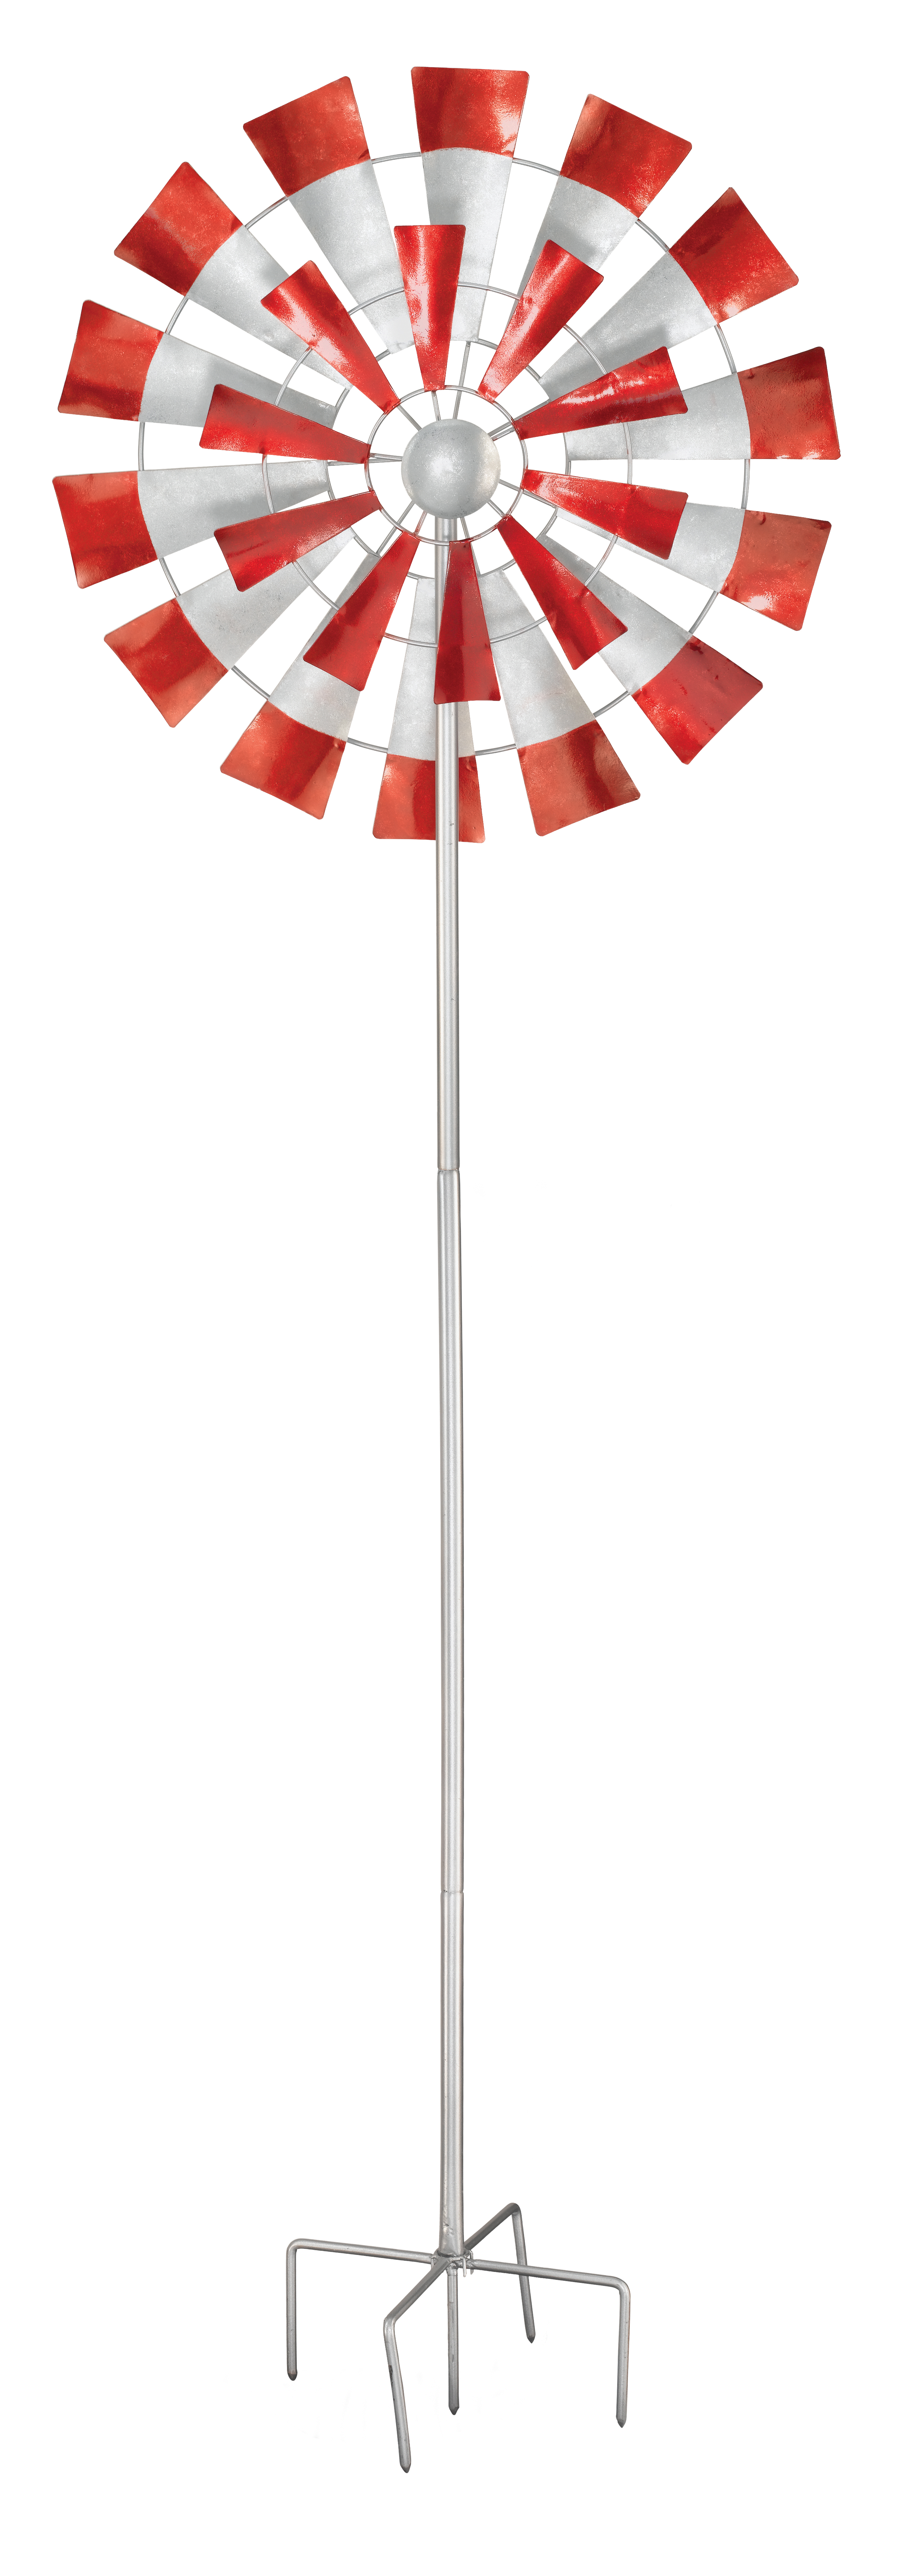 "Regal 26"" Kinetic Stake Windmill by Regal Arts & Gifts"